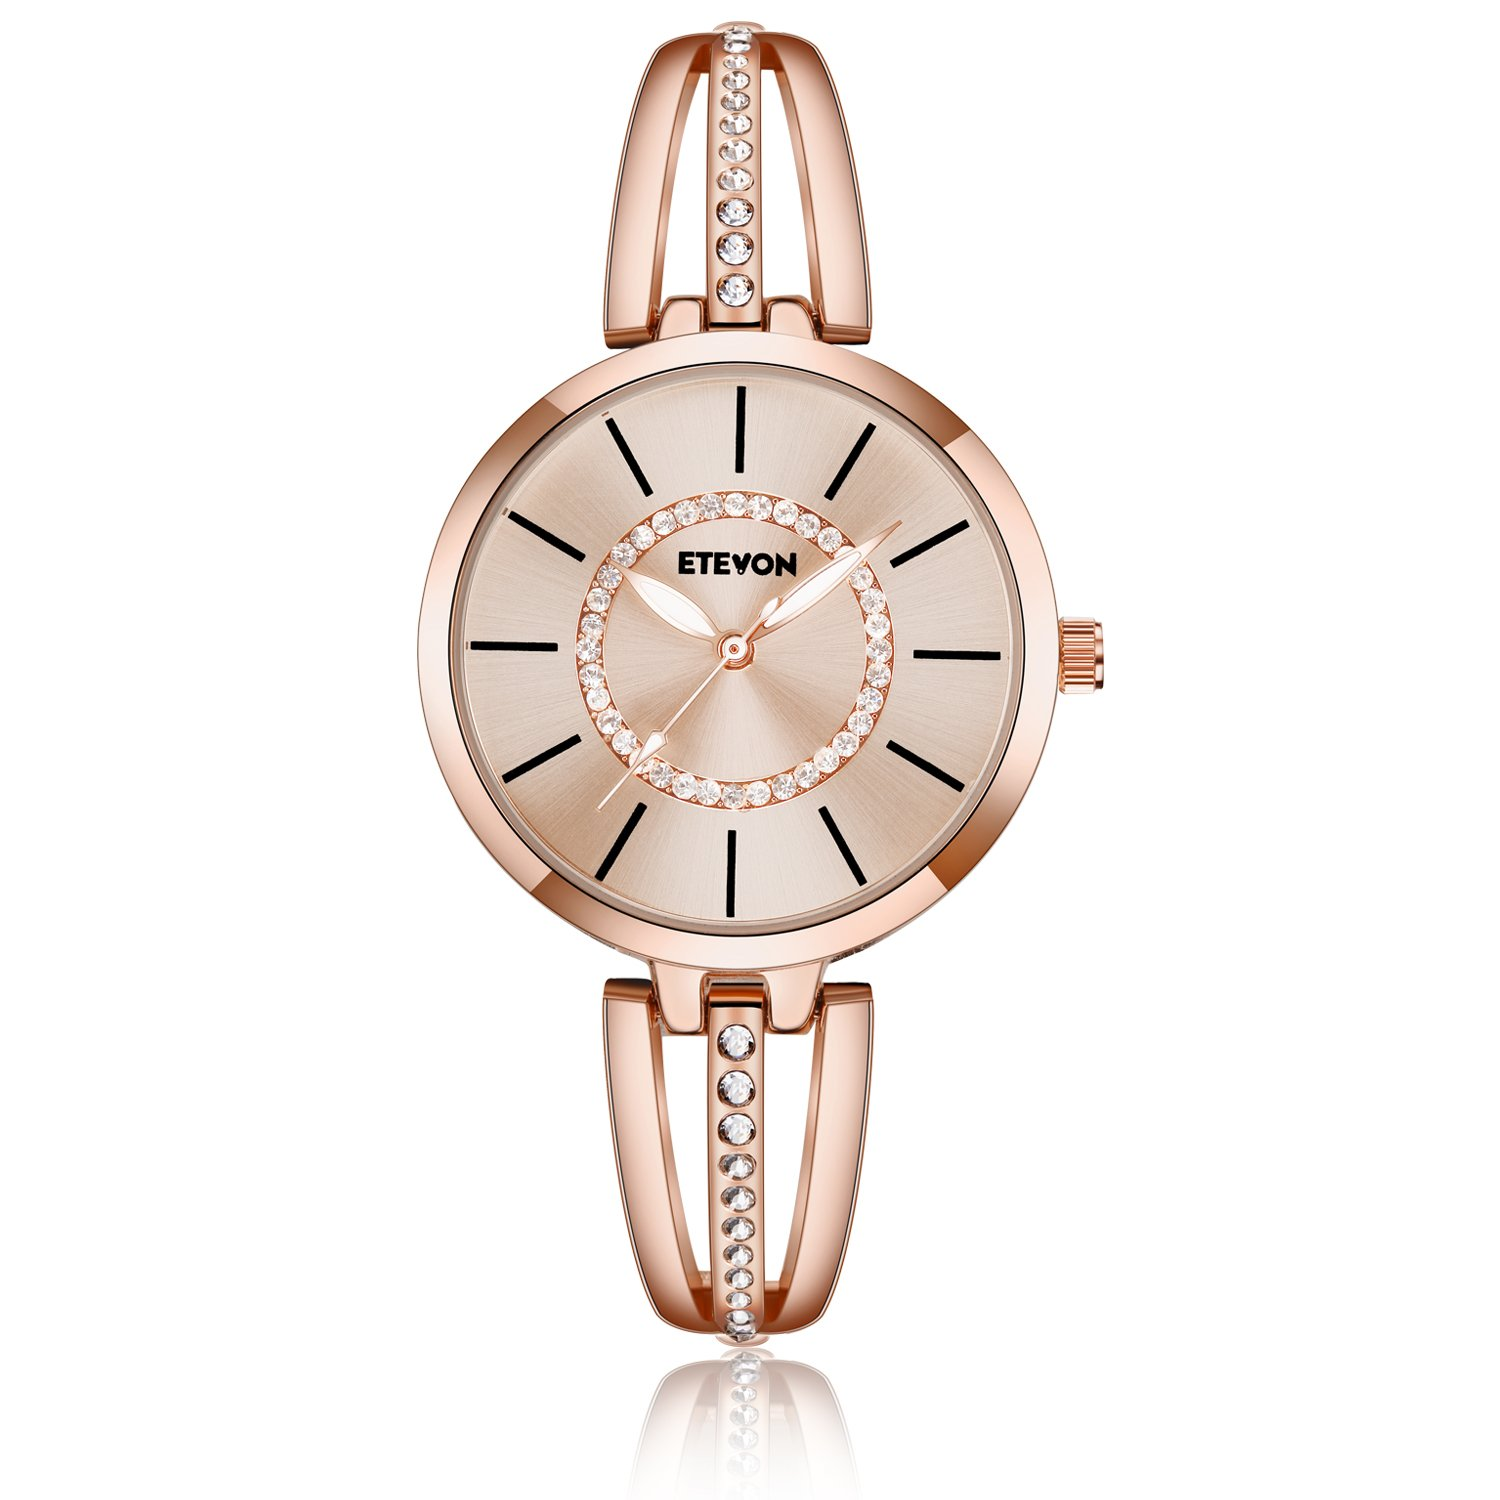 ETEVON Women's 'Crystal Bridge' Quartz Analog Watch with Luminous Pointers and Rose Gold Bracelet Waterproof, Fashion Dress Wrist Watches for Women